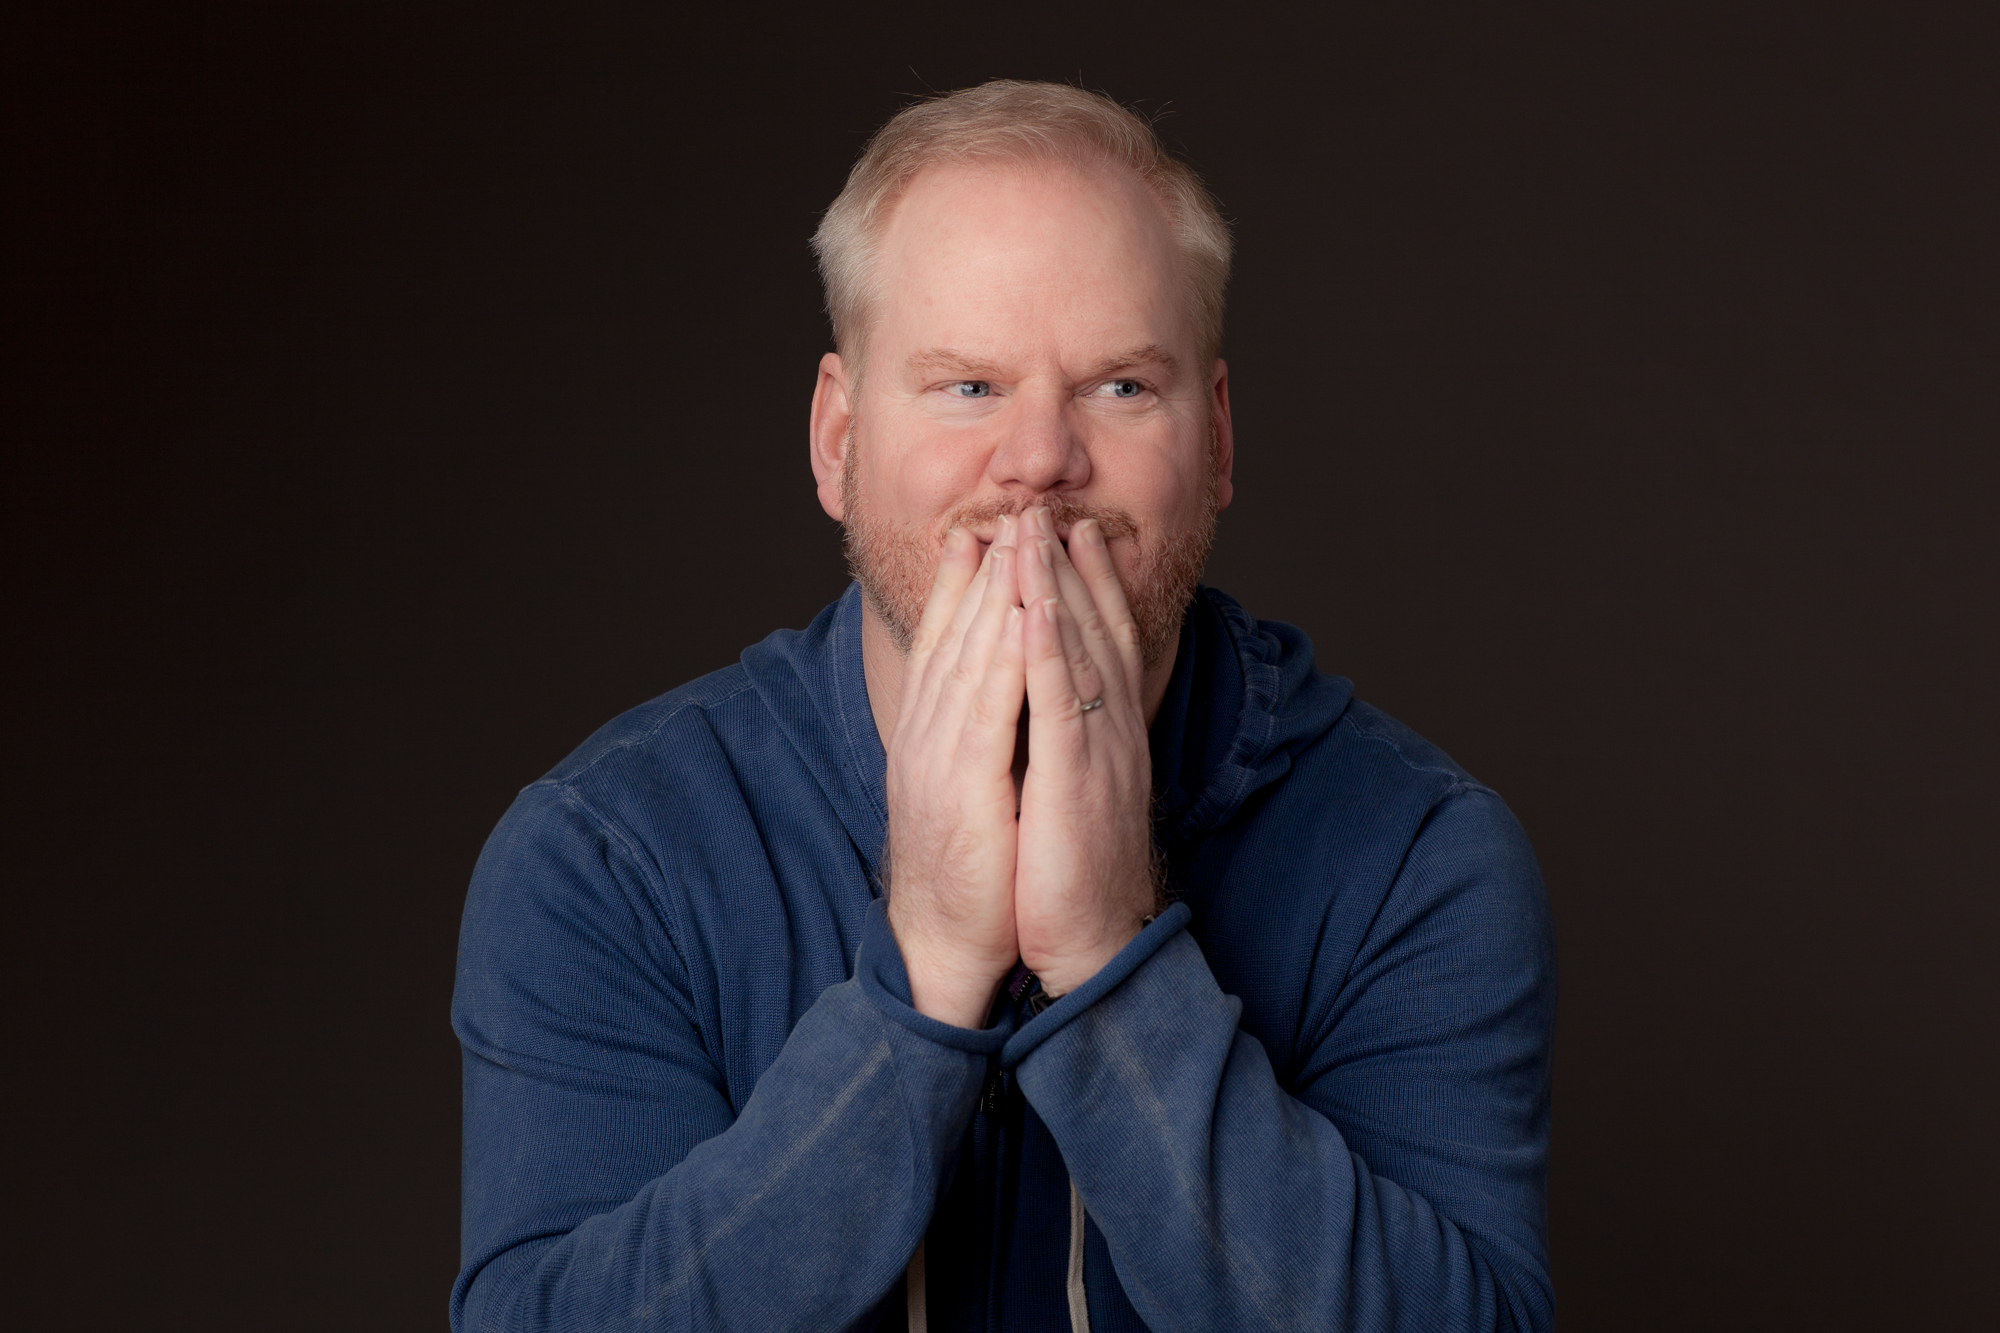 Jim Gaffigan earned a  million dollar salary - leaving the net worth at 6 million in 2018